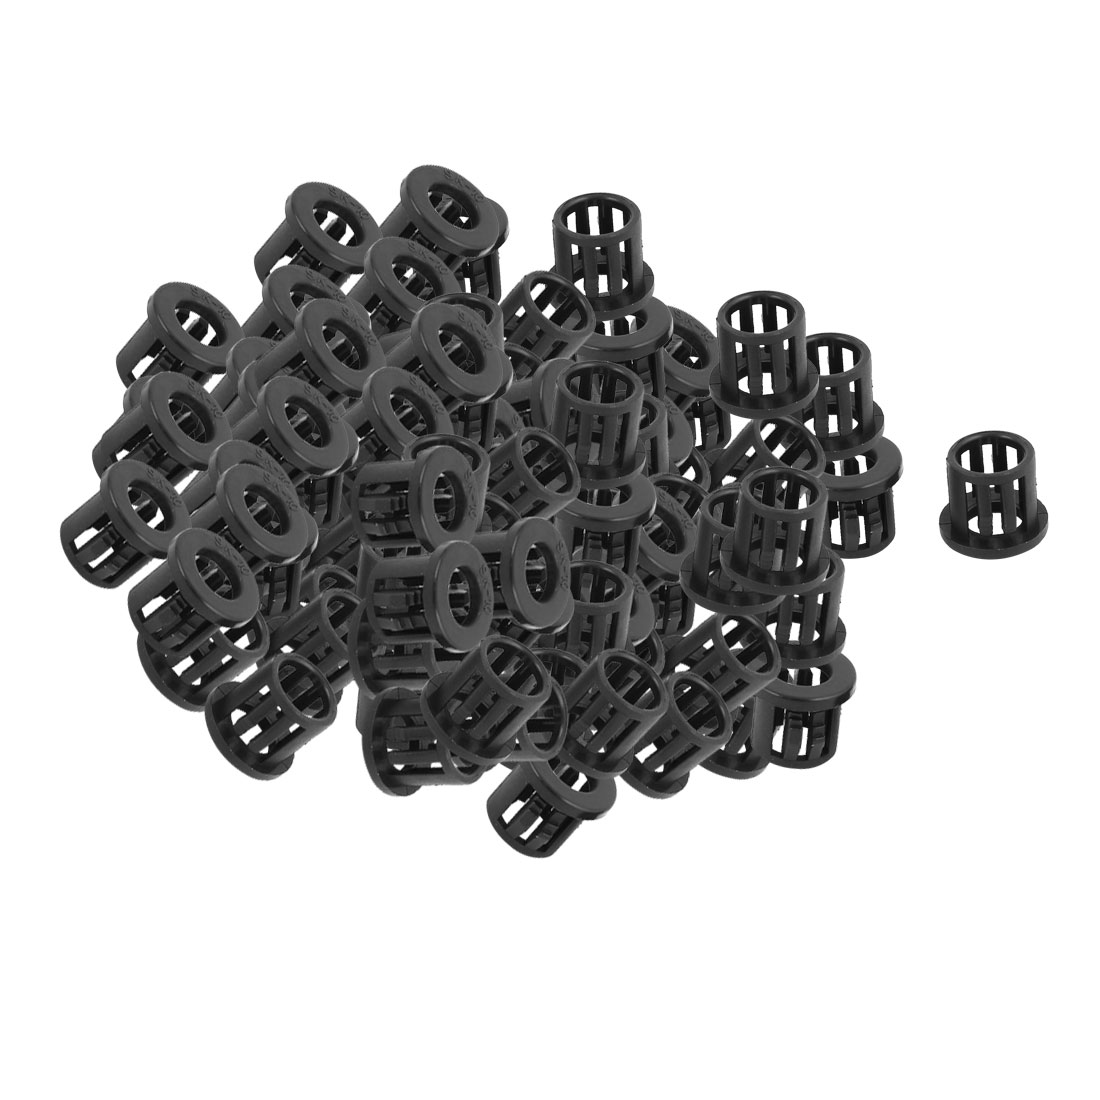 100 Pcs 6.5mm x 10mm Round Cable Harness Protective Snap Bushing SK-10 Black